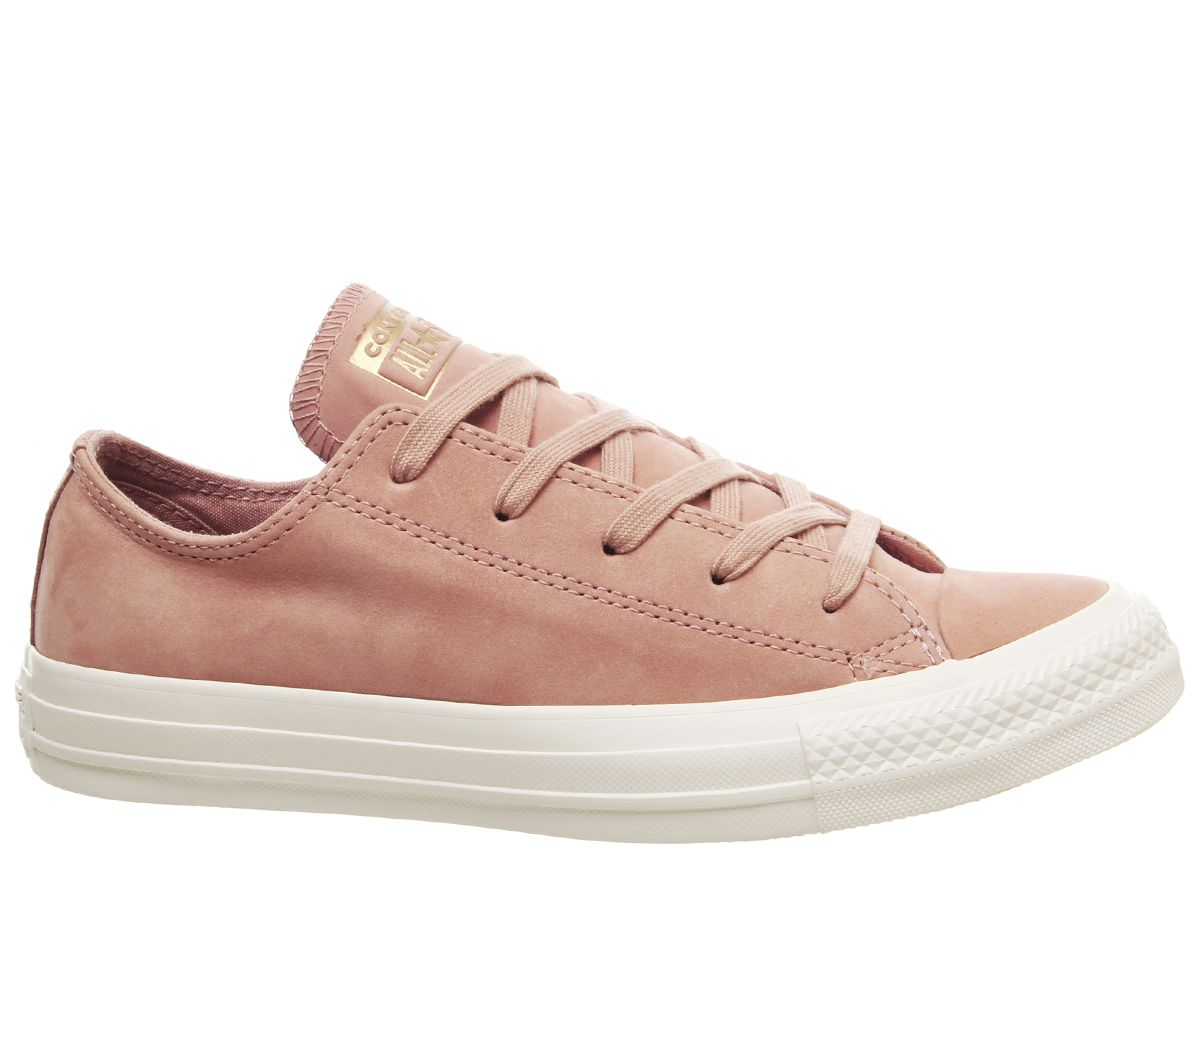 Details about Womens Converse Allstar Low Leather Trainers Rose Gold Egret Minimal Exclusive T